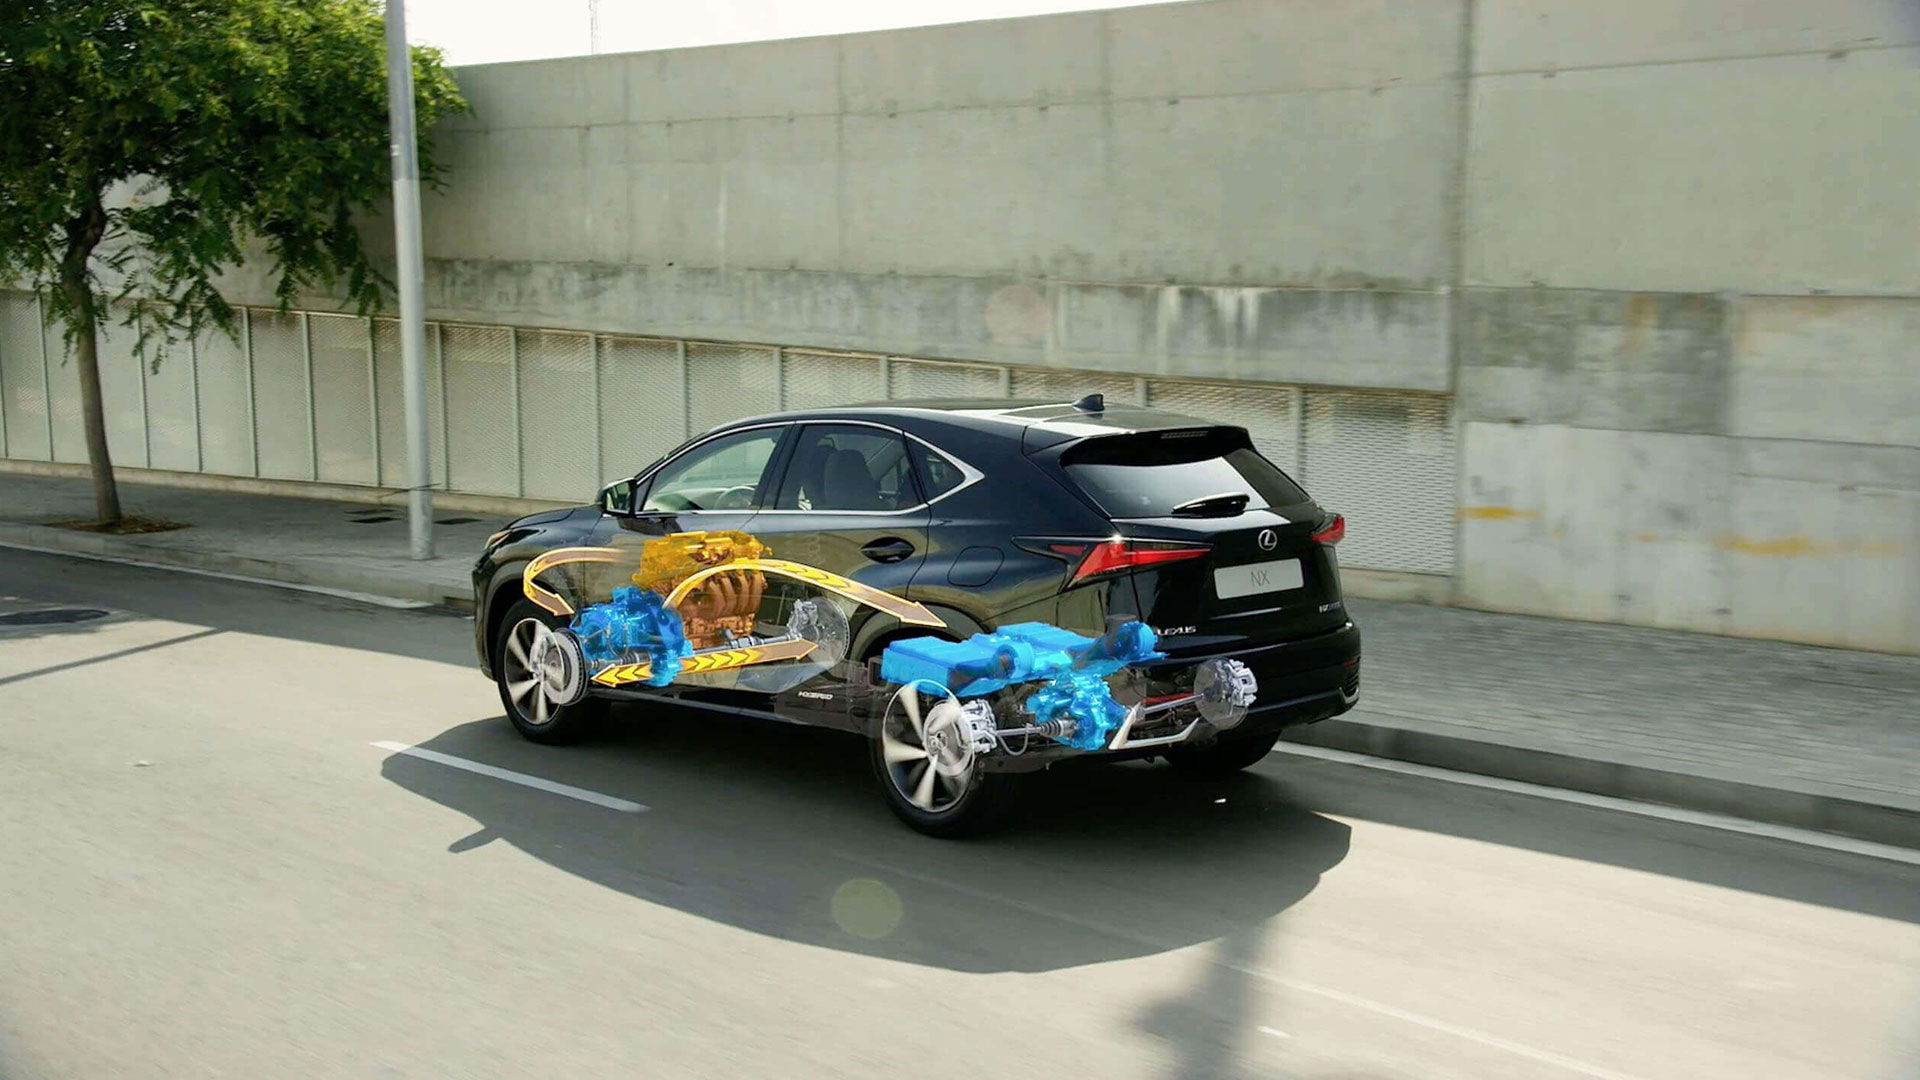 6 Lexus self charging hybrid image